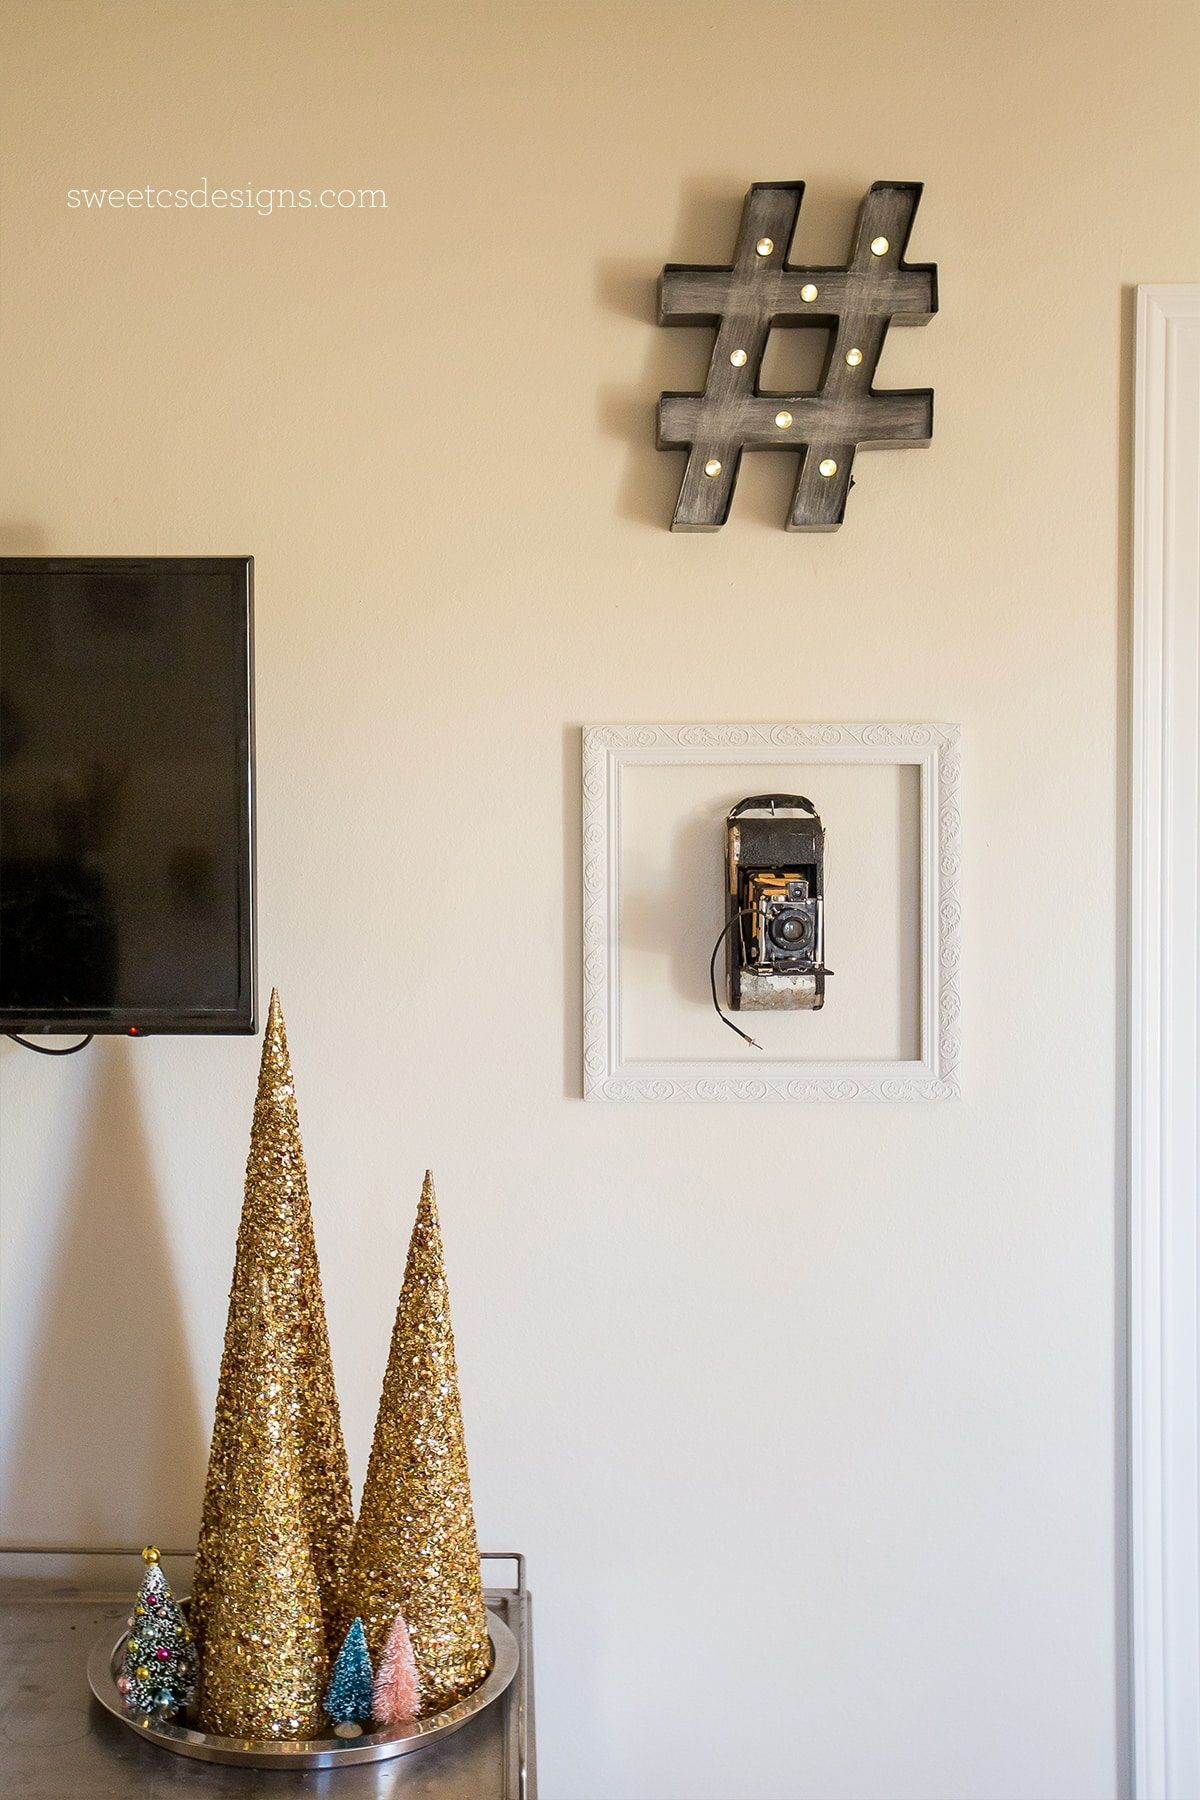 Simple metallic Christmas decor- perfect for a minimalist or retro area!